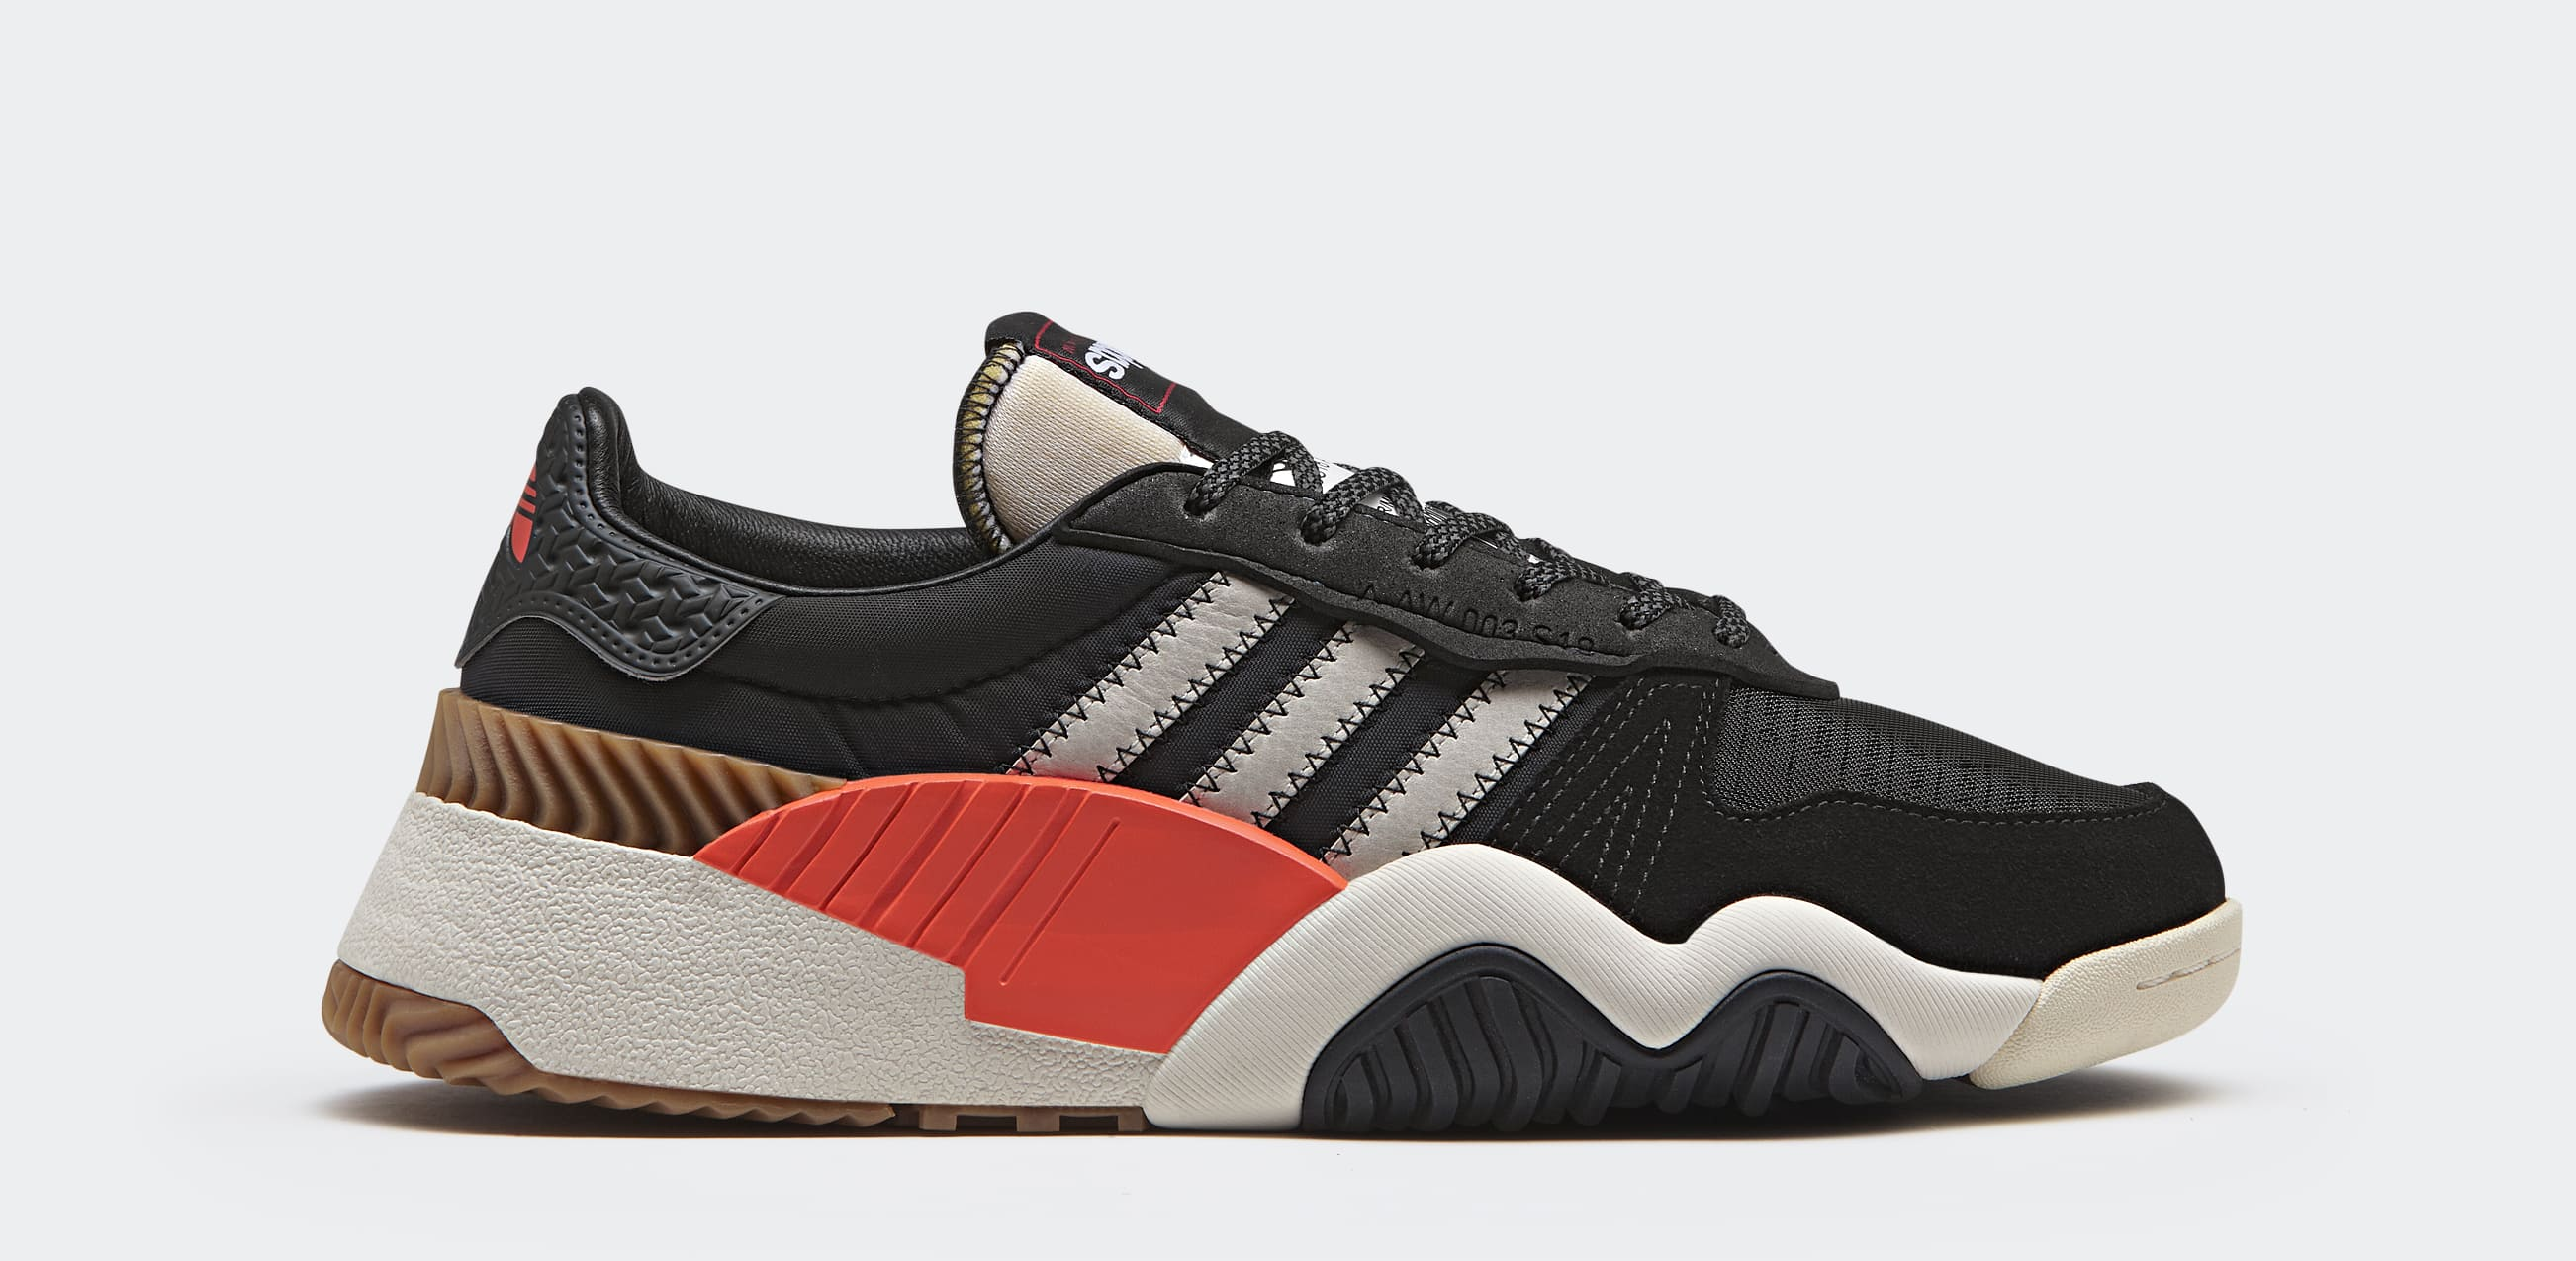 Alexander Wang's latest trainers are turnt